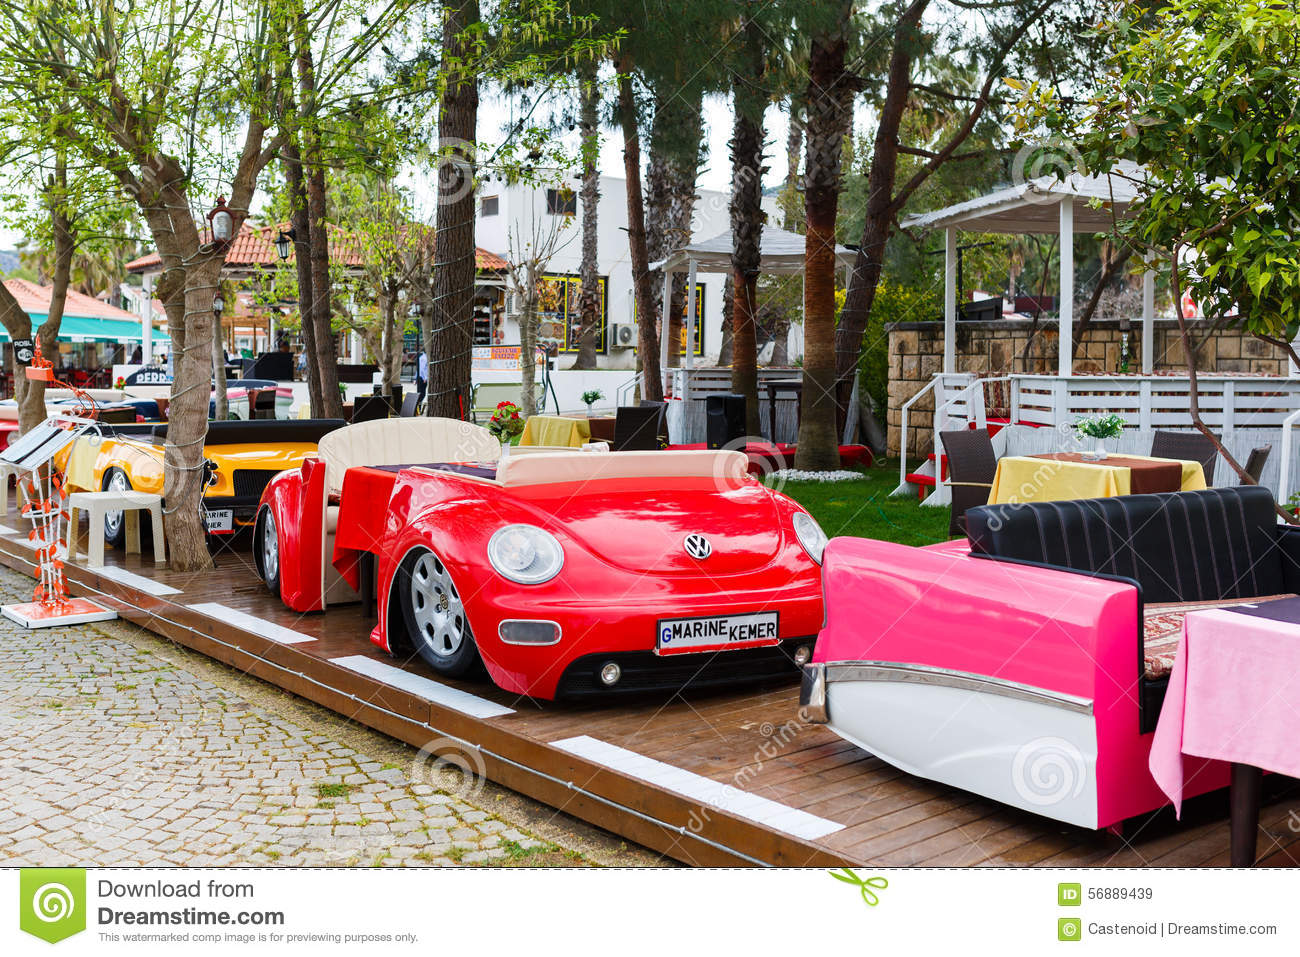 Autocafe in Kemer